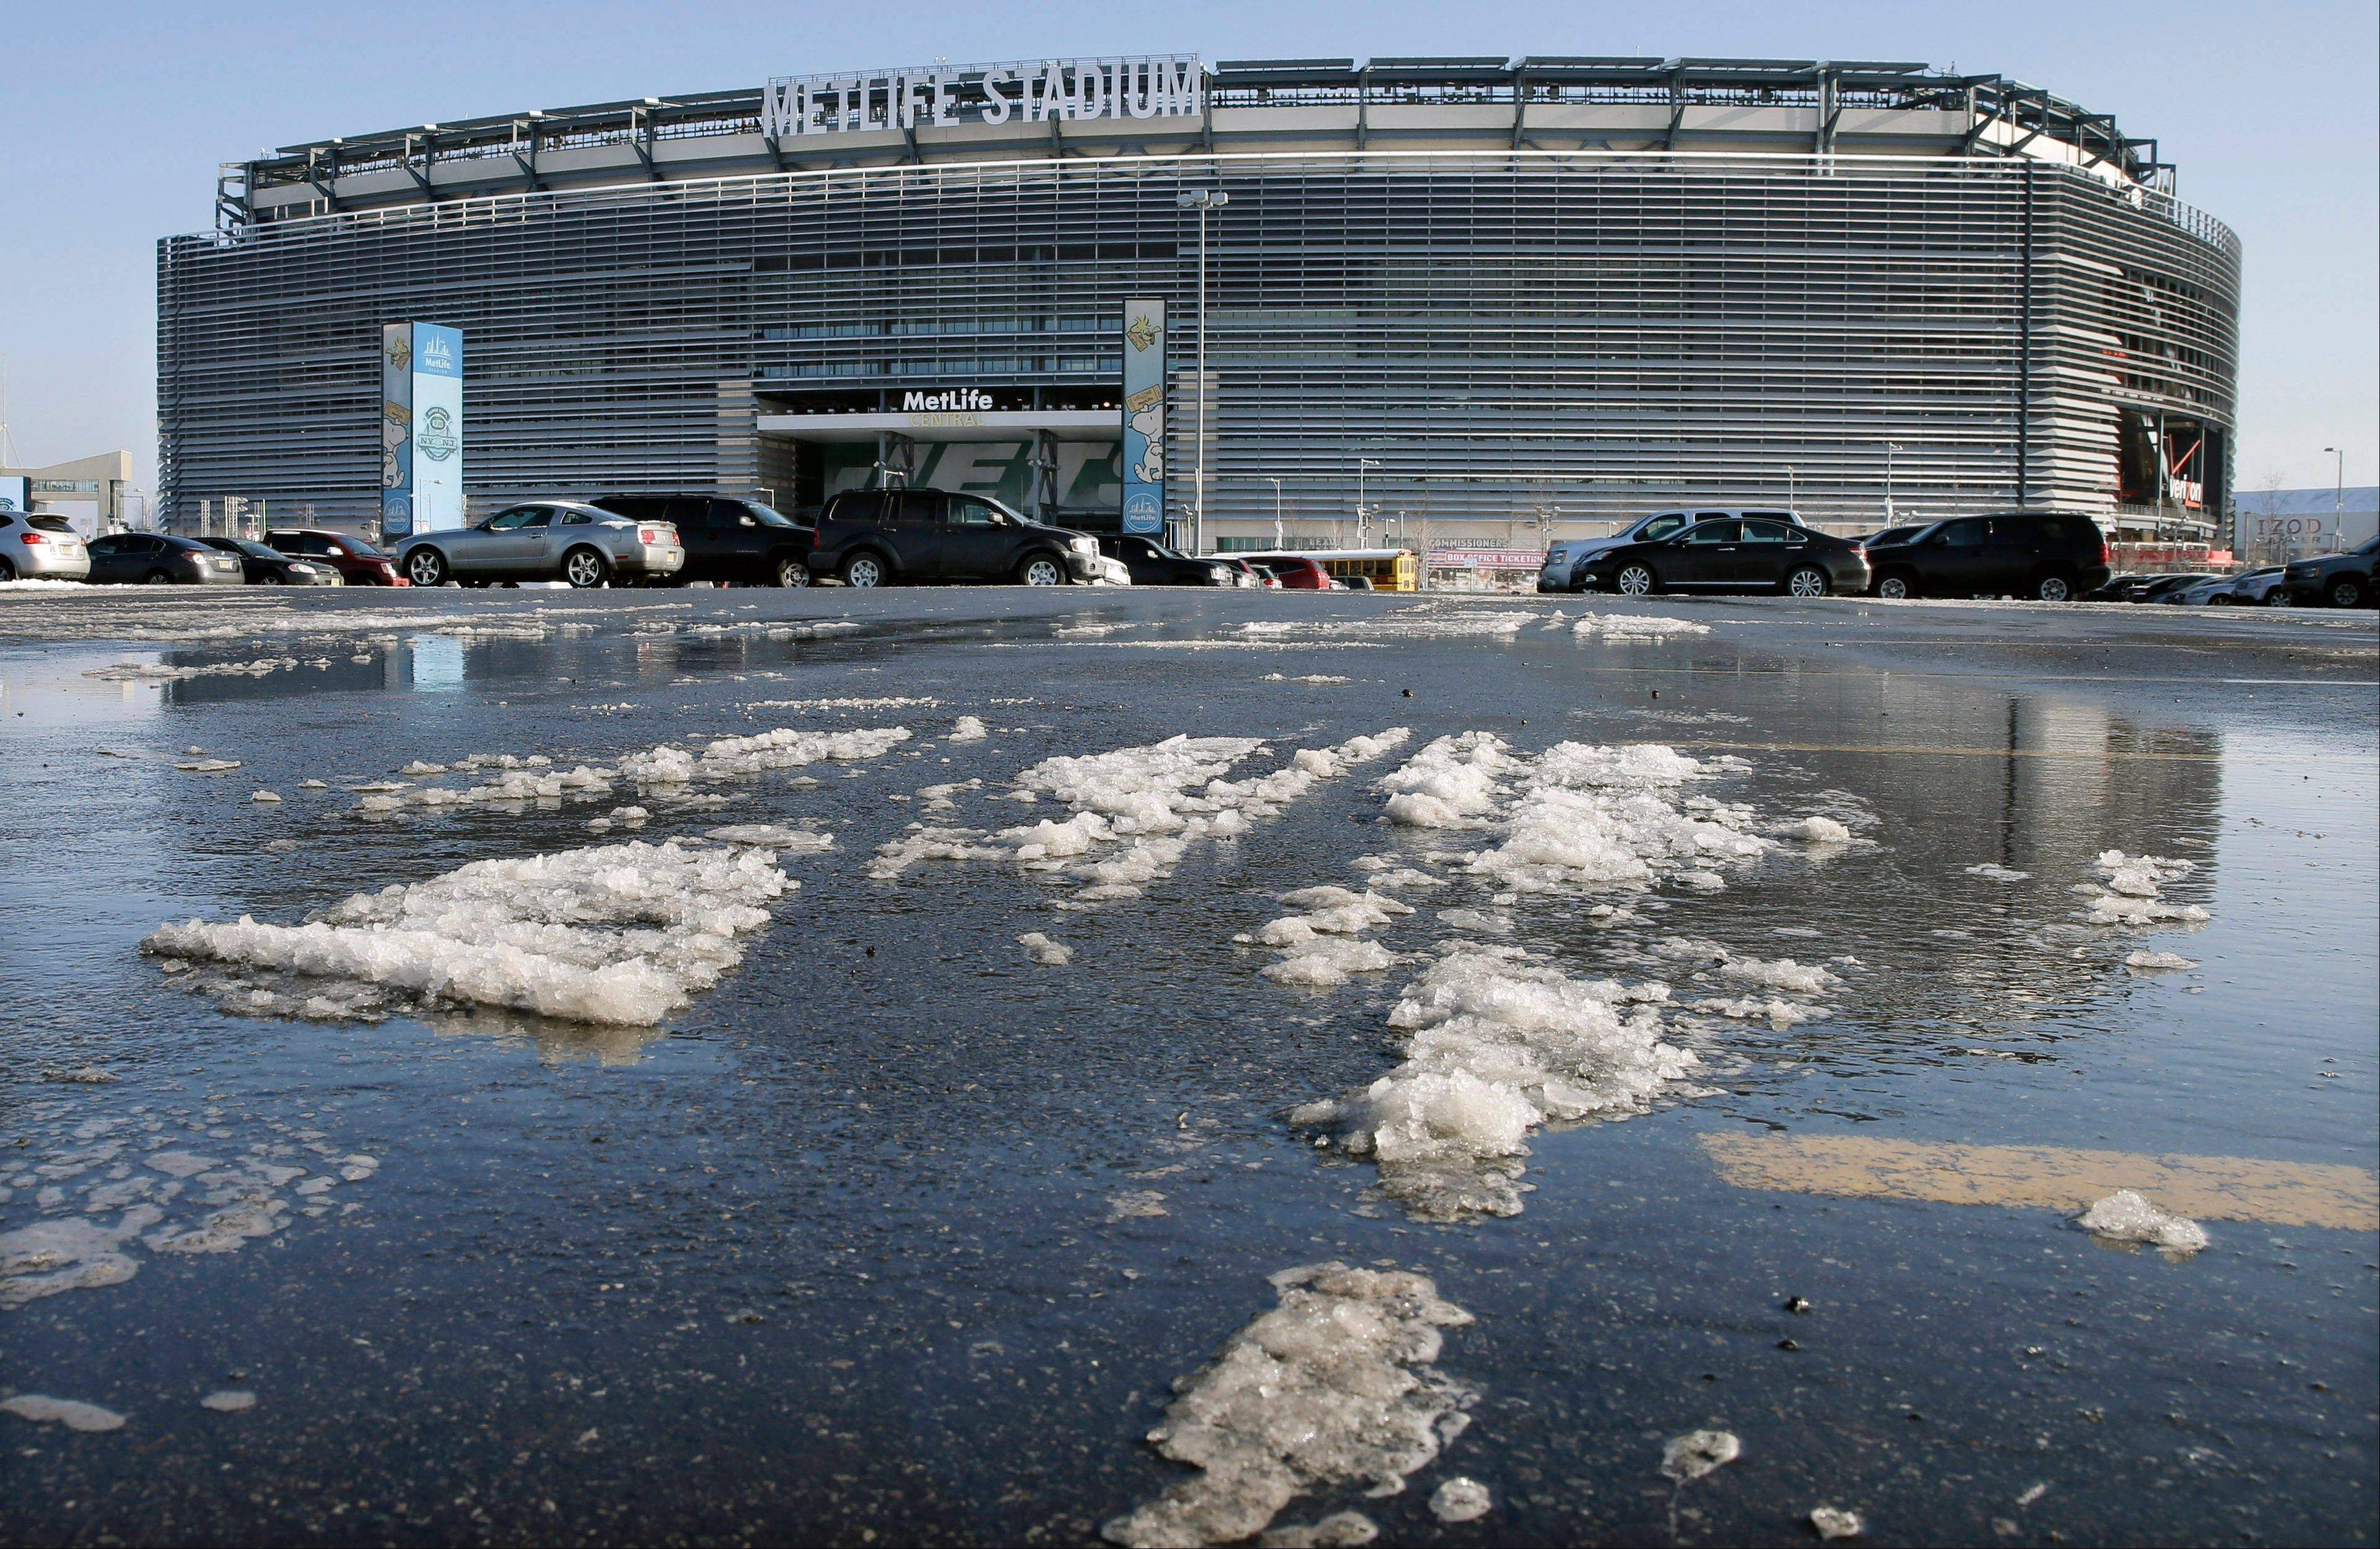 Snow and slush left from Tuesday's snowfall is seen outside MetLife stadium in East Rutherford, N.J. Later Wednesday, at MetLife, officials demonstrated snow removal and melting machinery and outlined emergency weather scenarios and contingency plans for the Super Bowl in February.